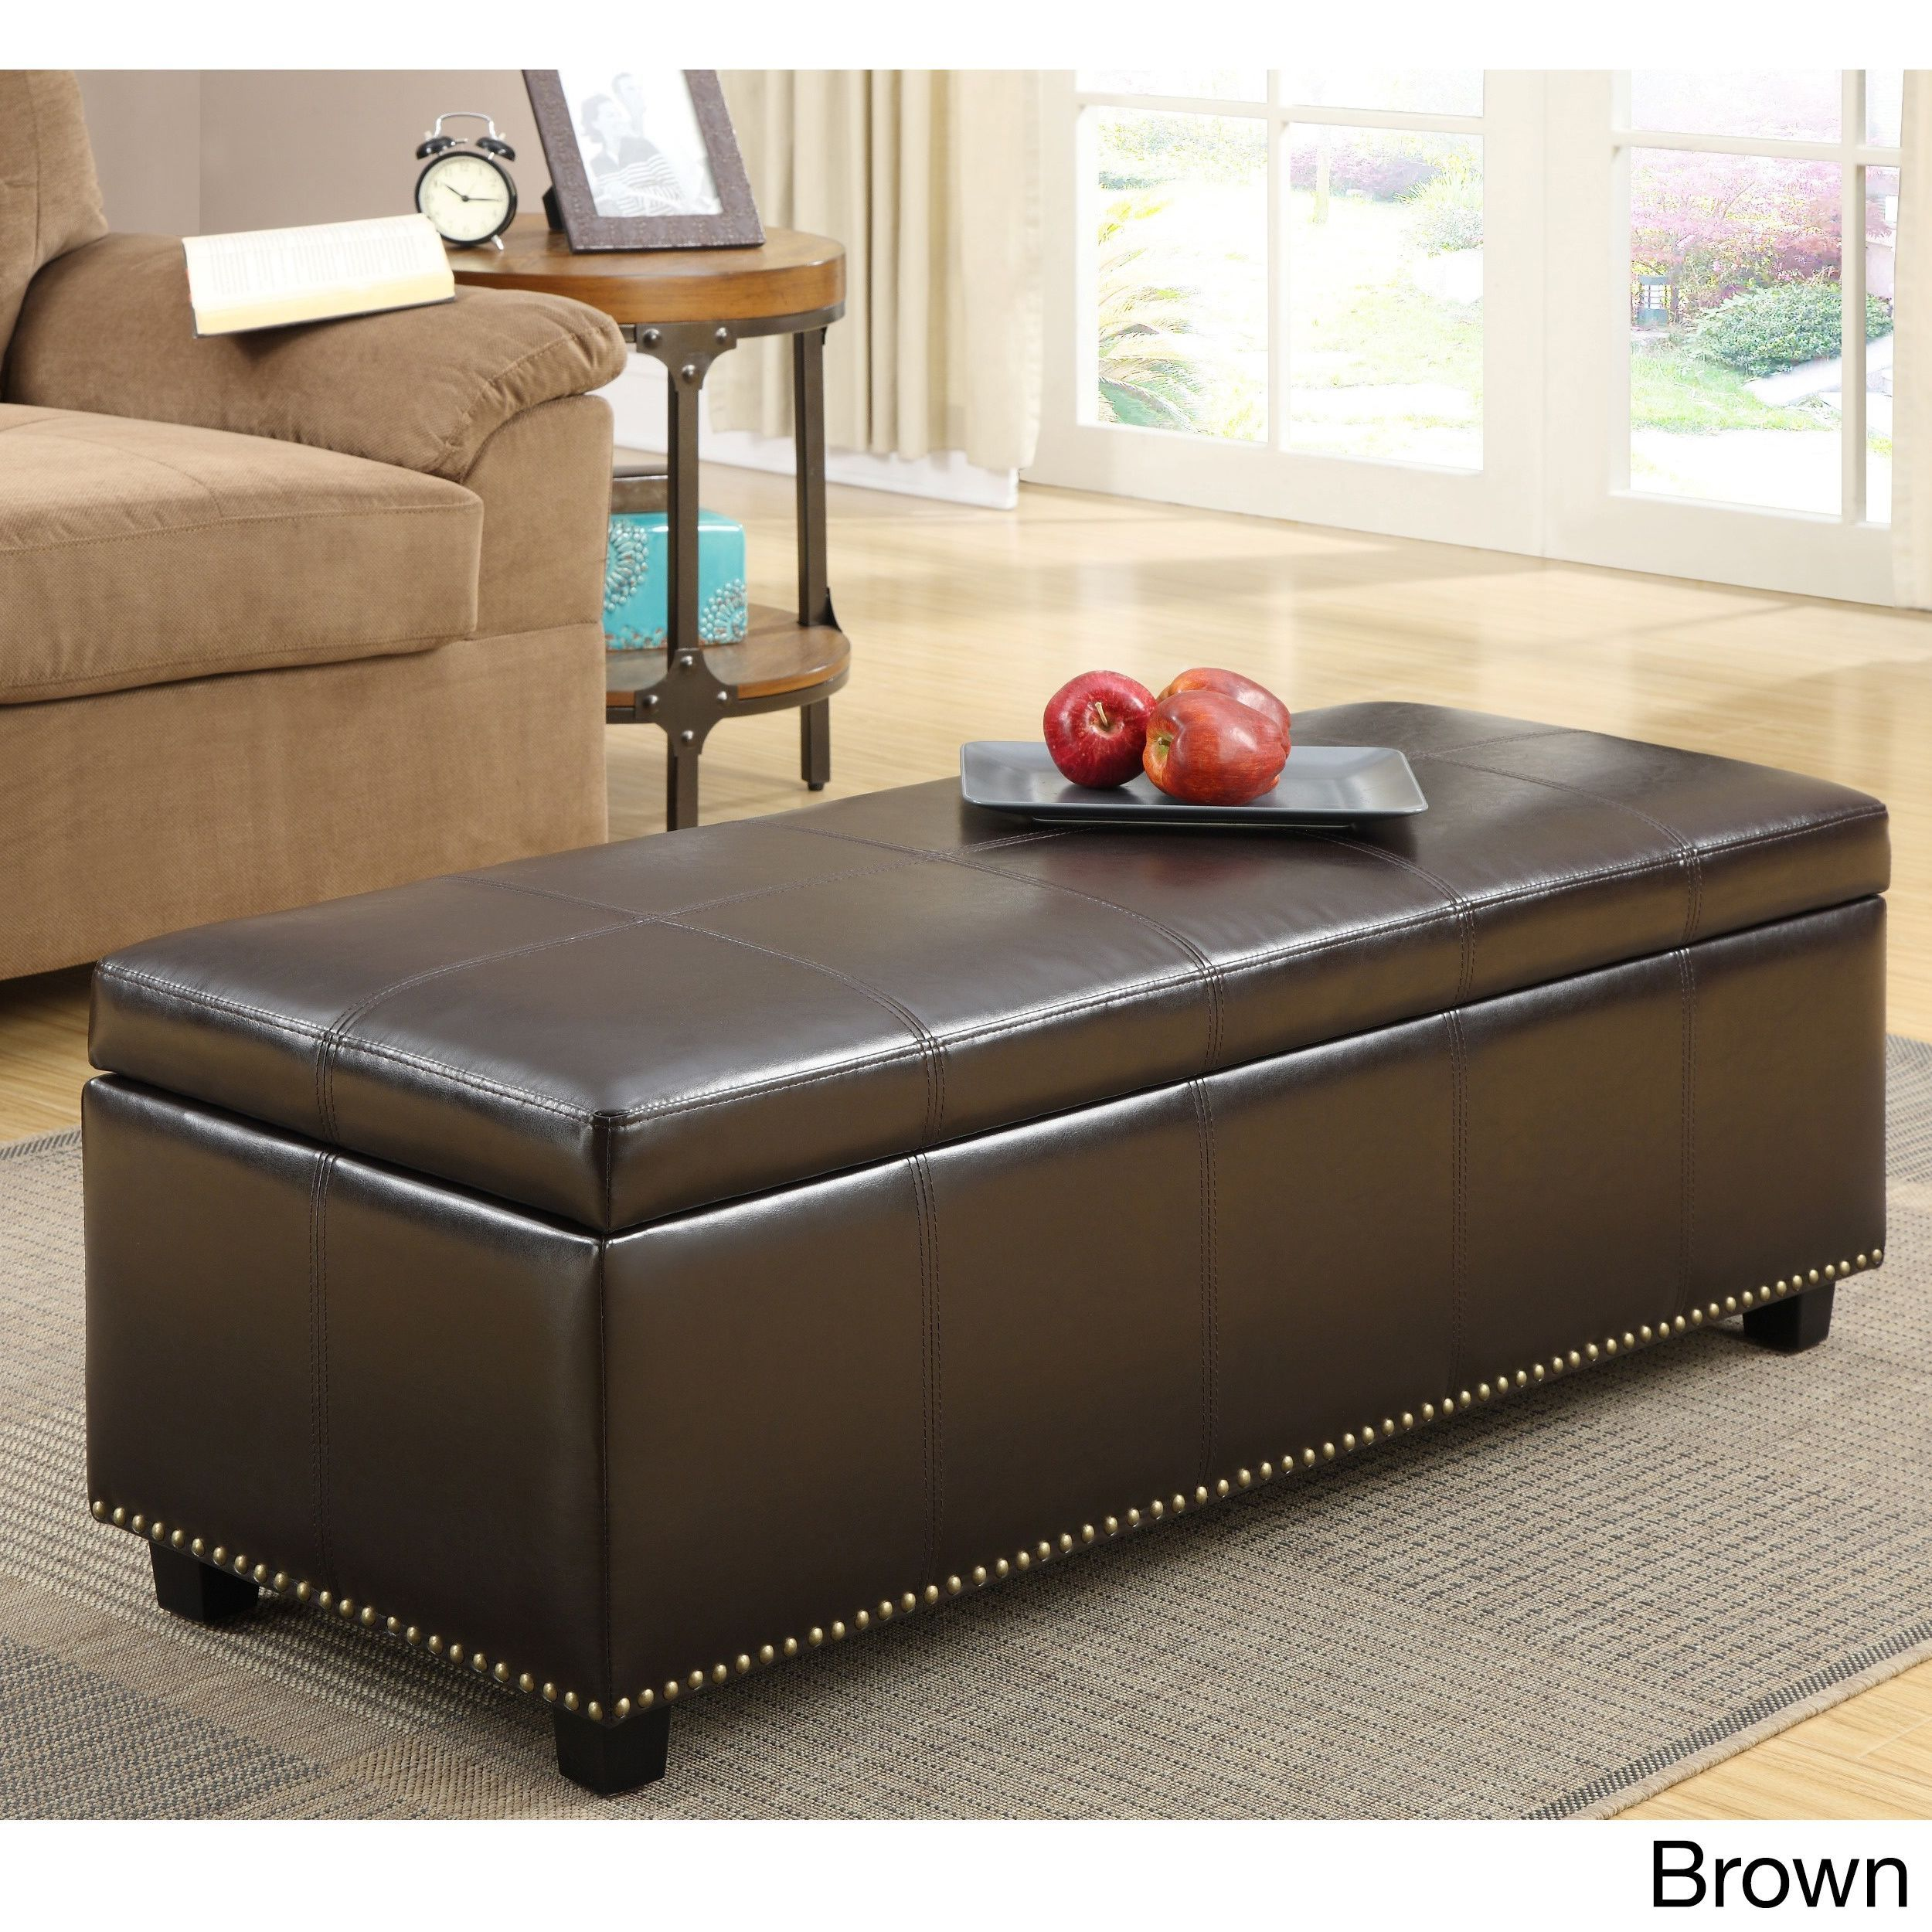 Online Ping Bedding Furniture Electronics Jewelry Clothing More Brown Ottomanleather